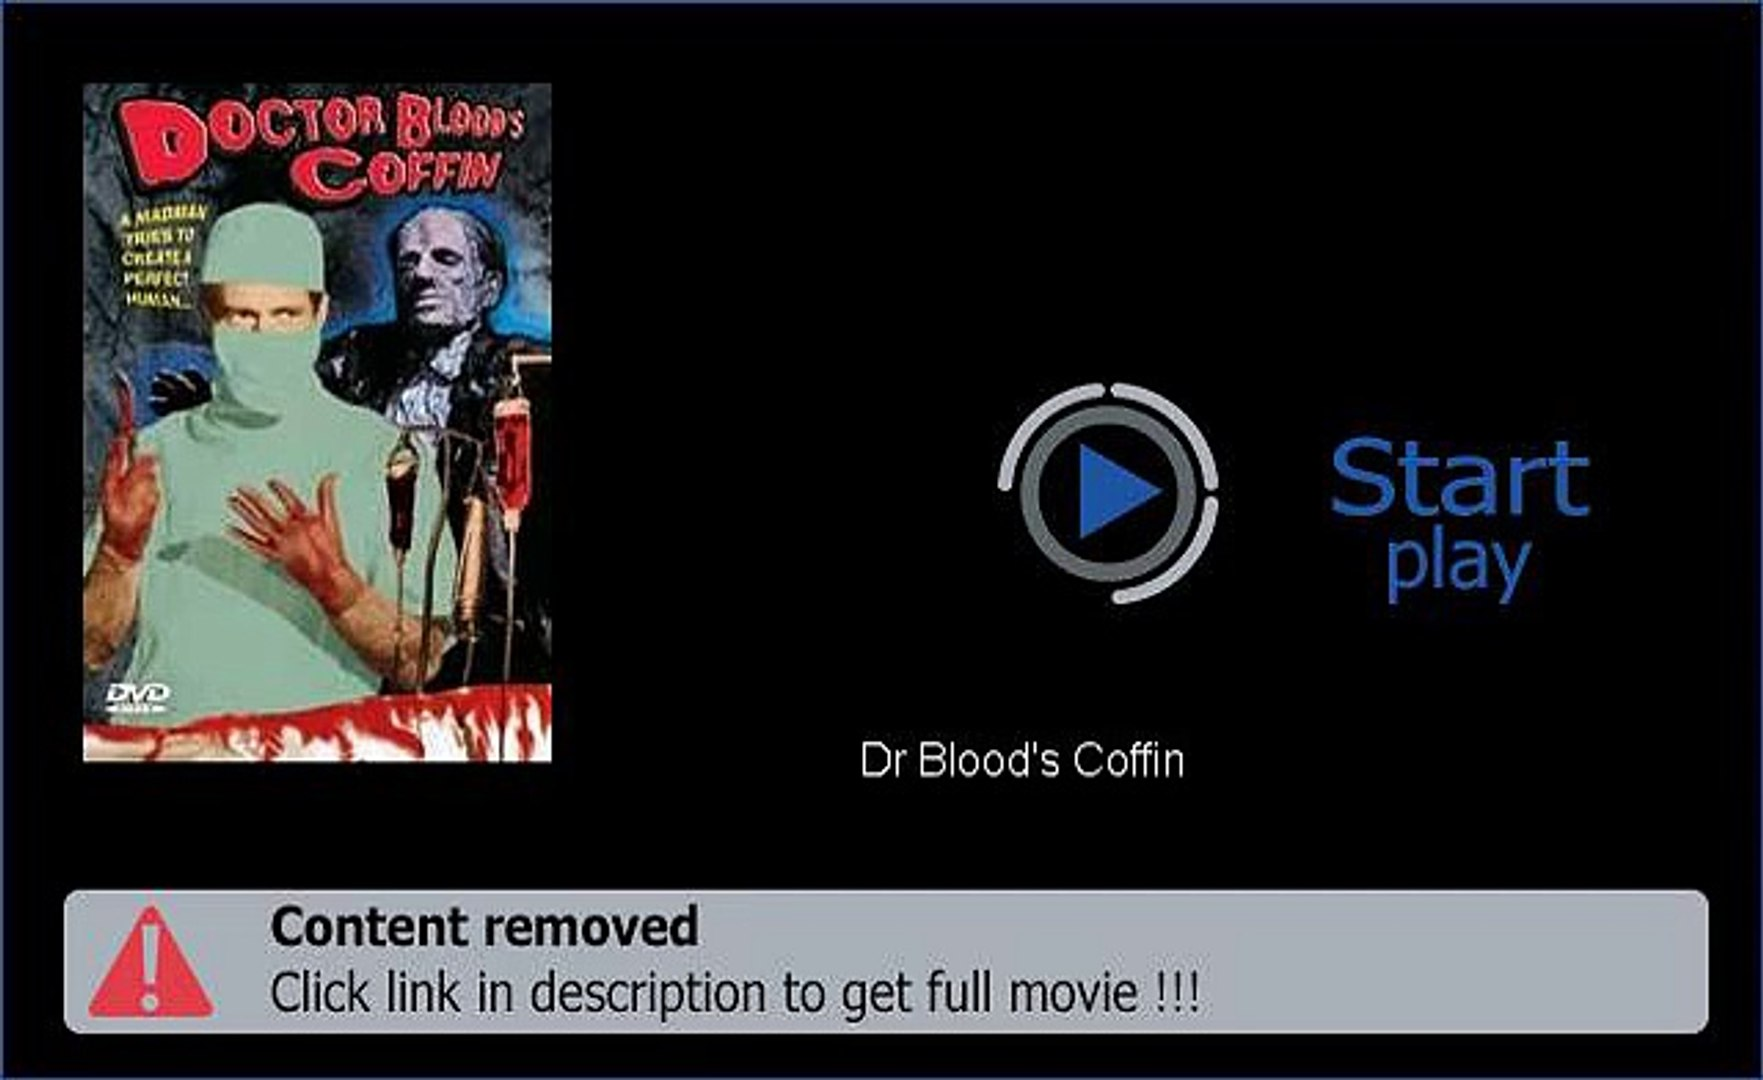 Dr Blood's Coffin Movie Download Link